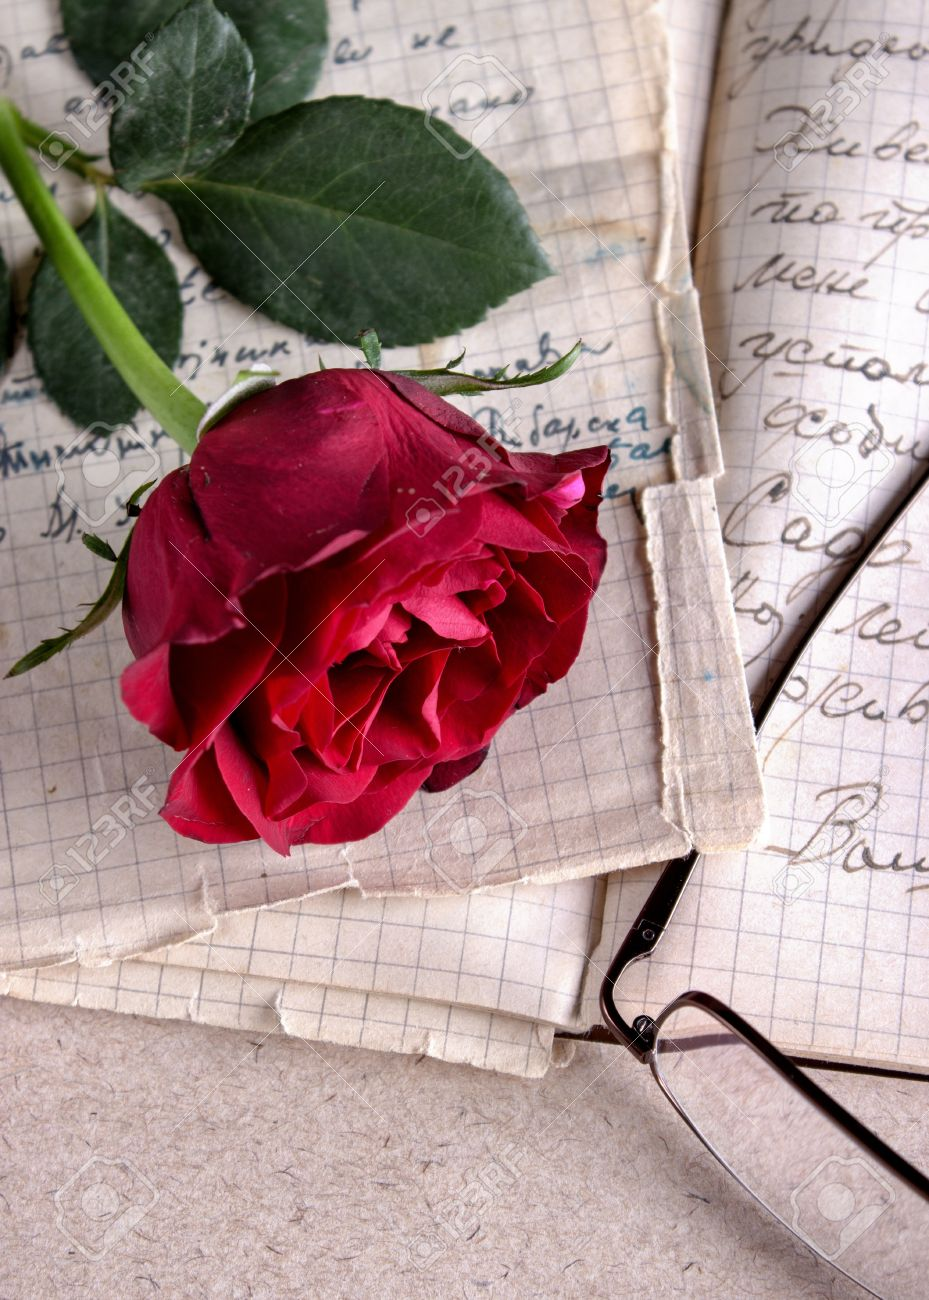 red rose on old paperlove letter stock photo 18359075